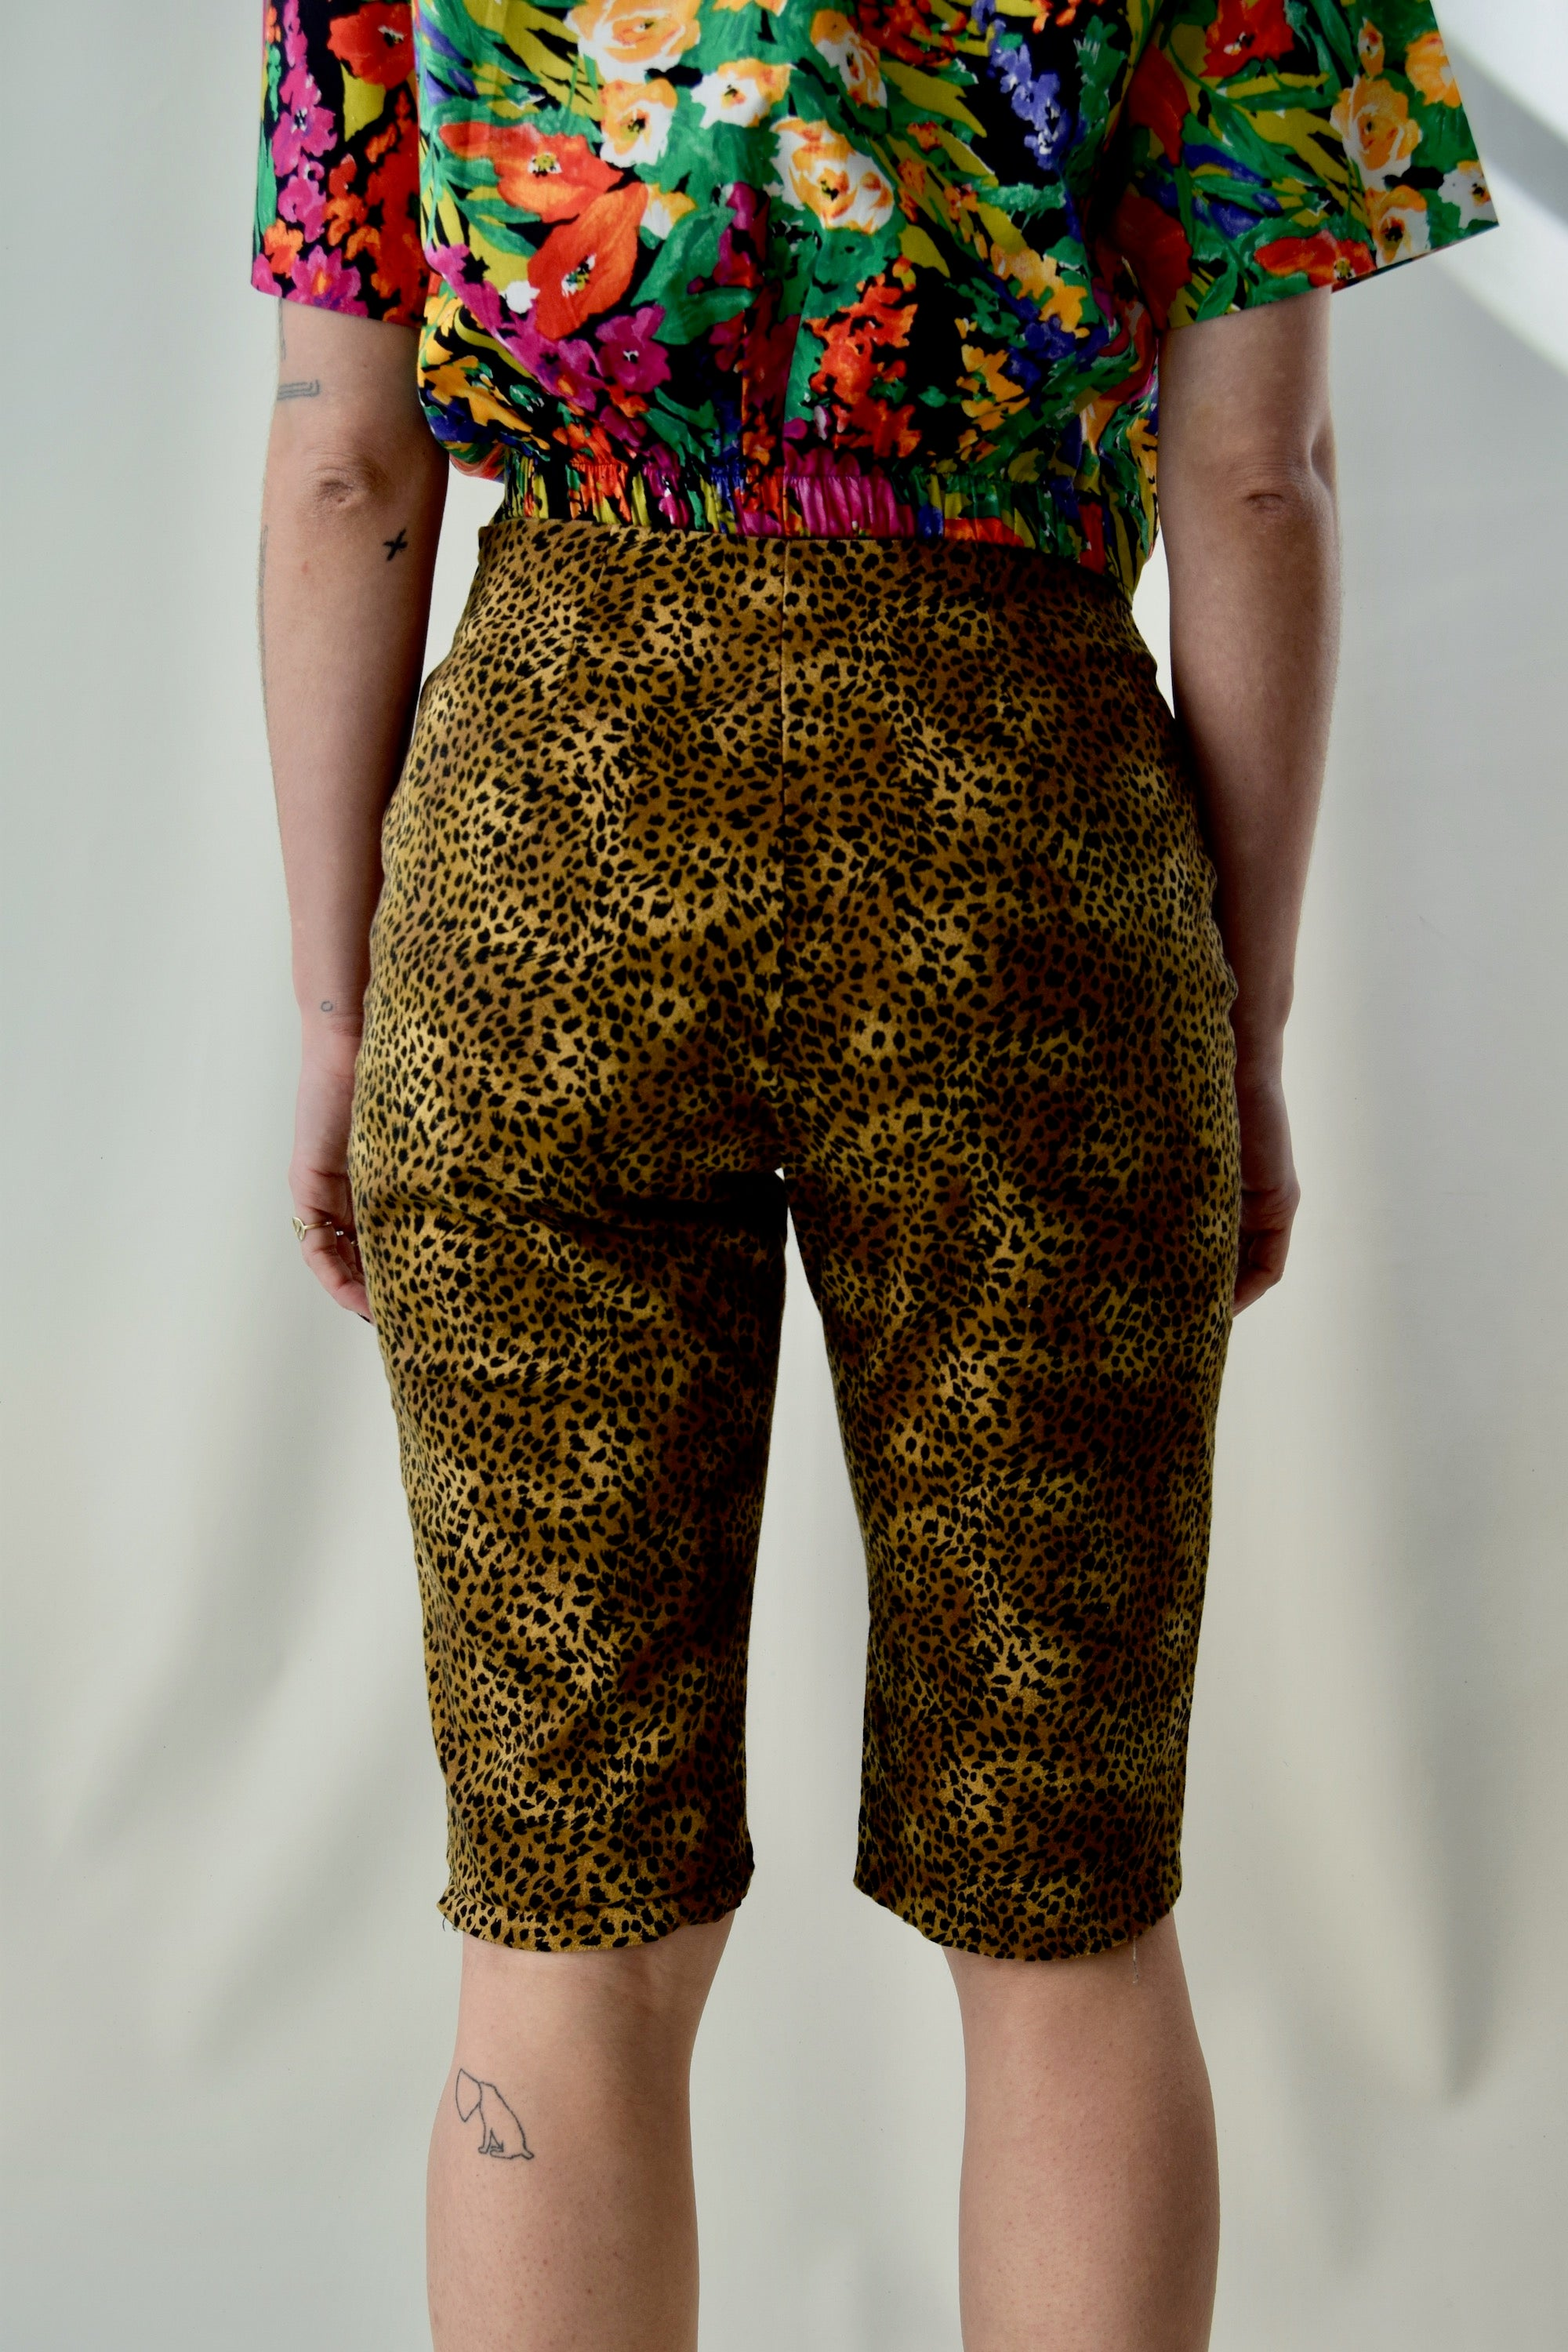 Vintage Animal Print Clam Digger Shorts FREE SHIPPING TO THE U.S.